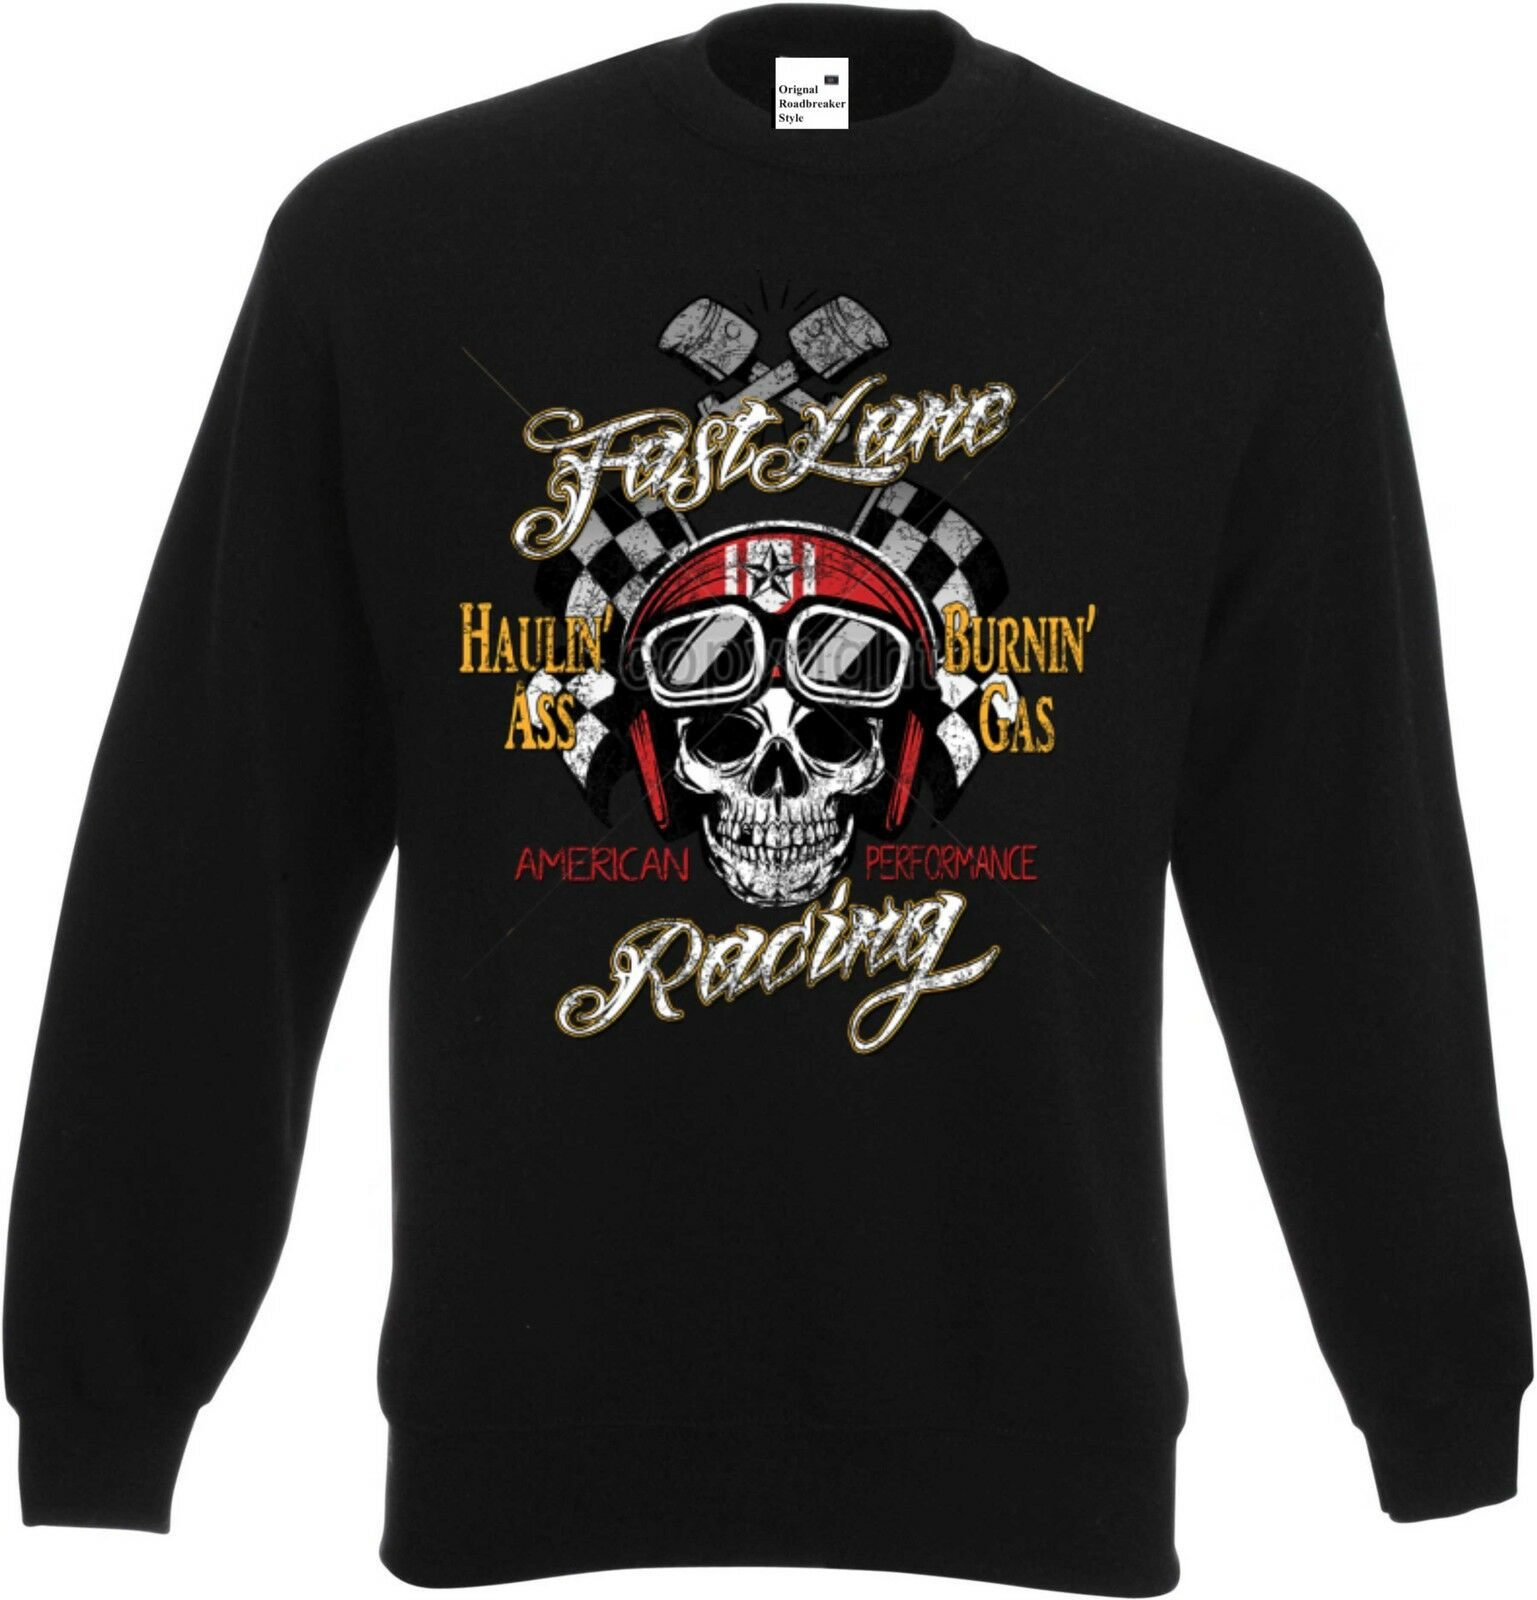 Sweatshirt black US Car V8 Biker Chopper-&Old Schoolmotiv Modell Fast Lane